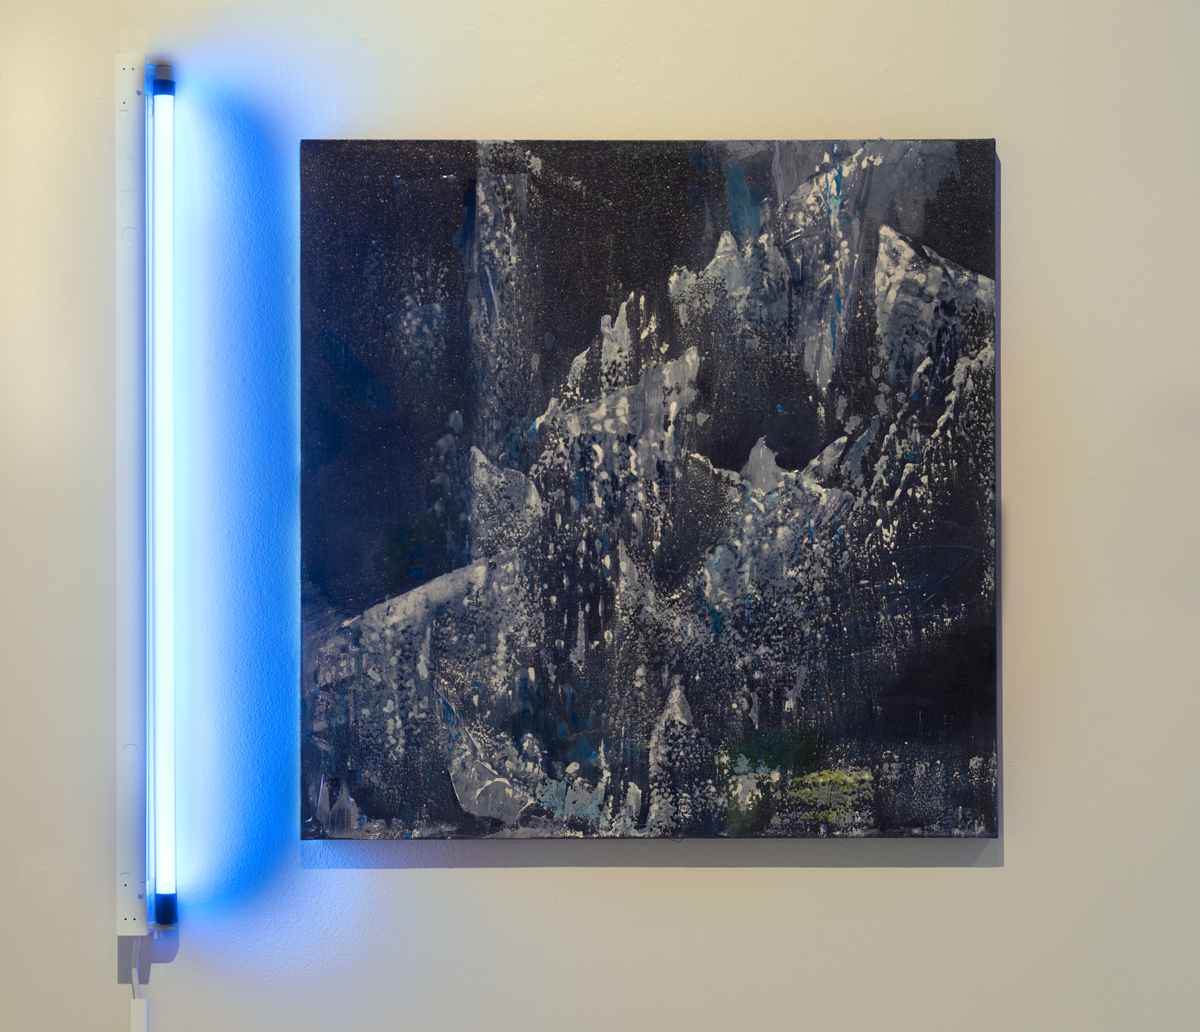 Time Spray . Acrylic, cyanotype on cotton canvas. LED light. 38 inches x 38 inches. 2017.